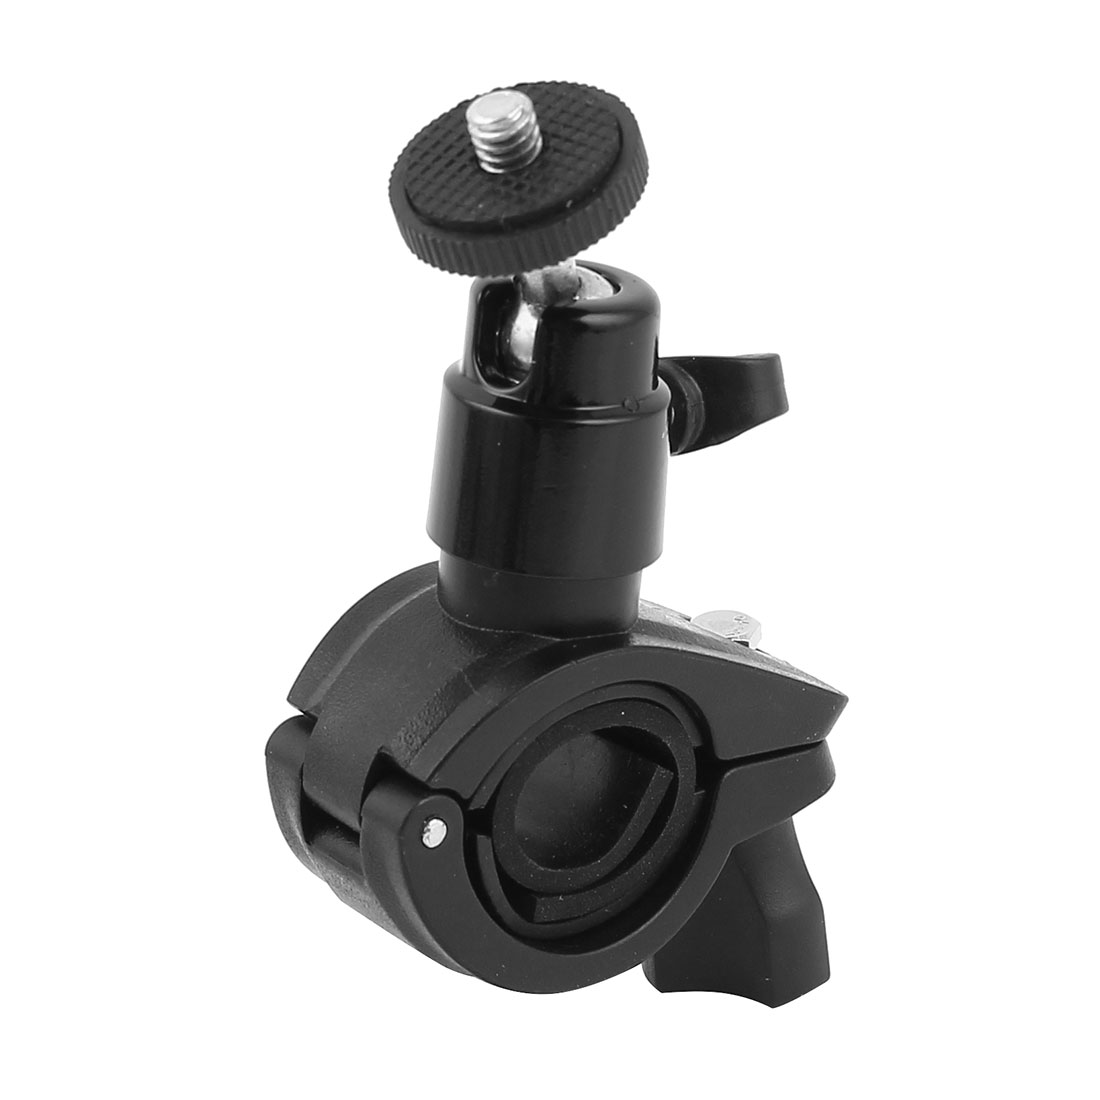 "Bicycle Bike Motorcycle Handlebar Mount Holder 1/4"" Screw for Digital Camera"